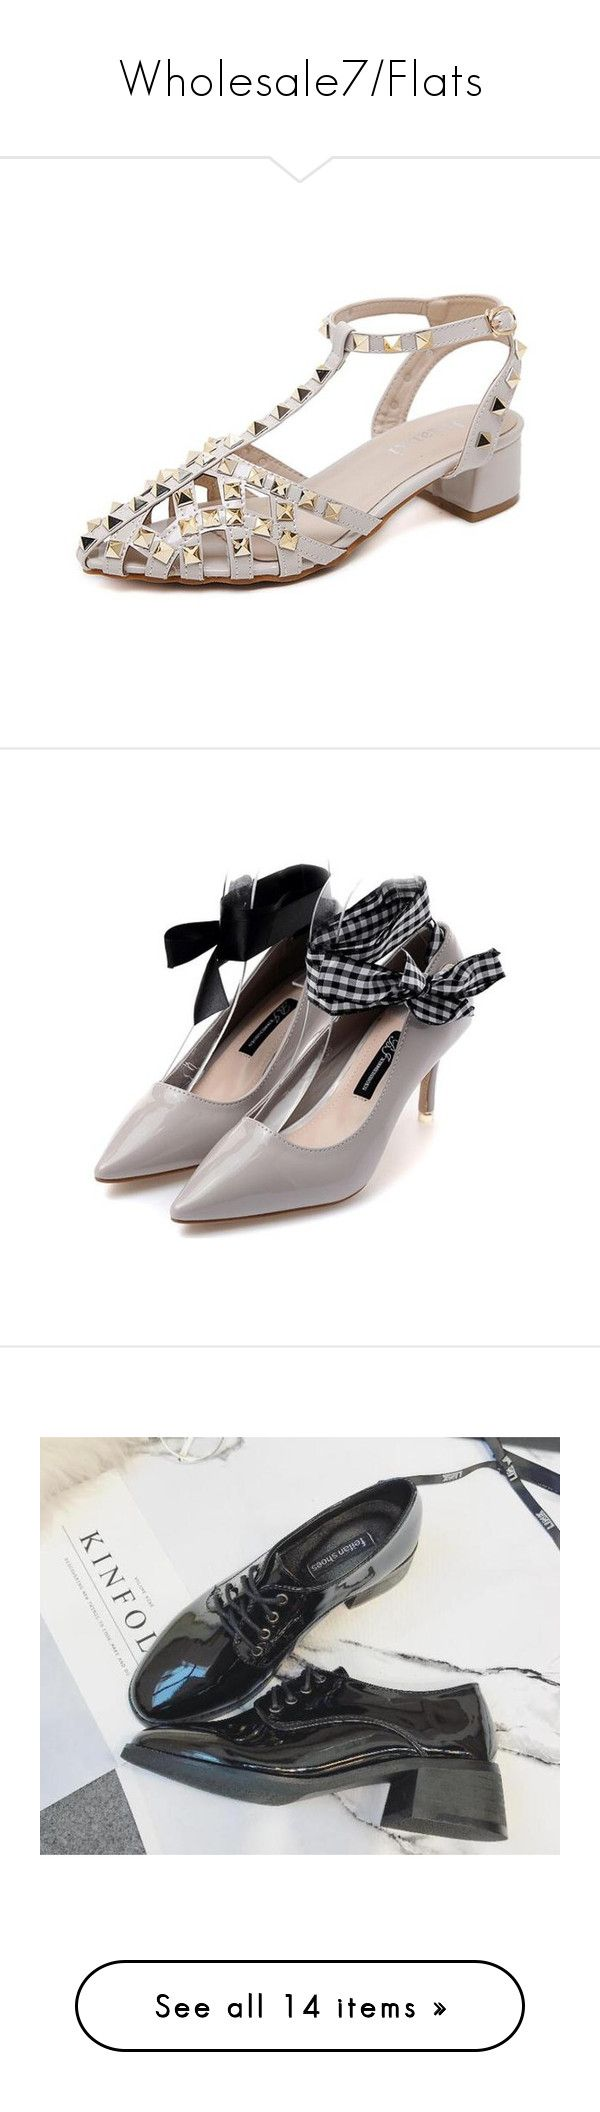 """""""Wholesale7/Flats"""" by lee77 ❤ liked on Polyvore featuring shoes, sandals, flats, flat pumps, platform shoes, flat shoes, flat heel shoes, square-toe ballet flats, black shoes and round cap"""